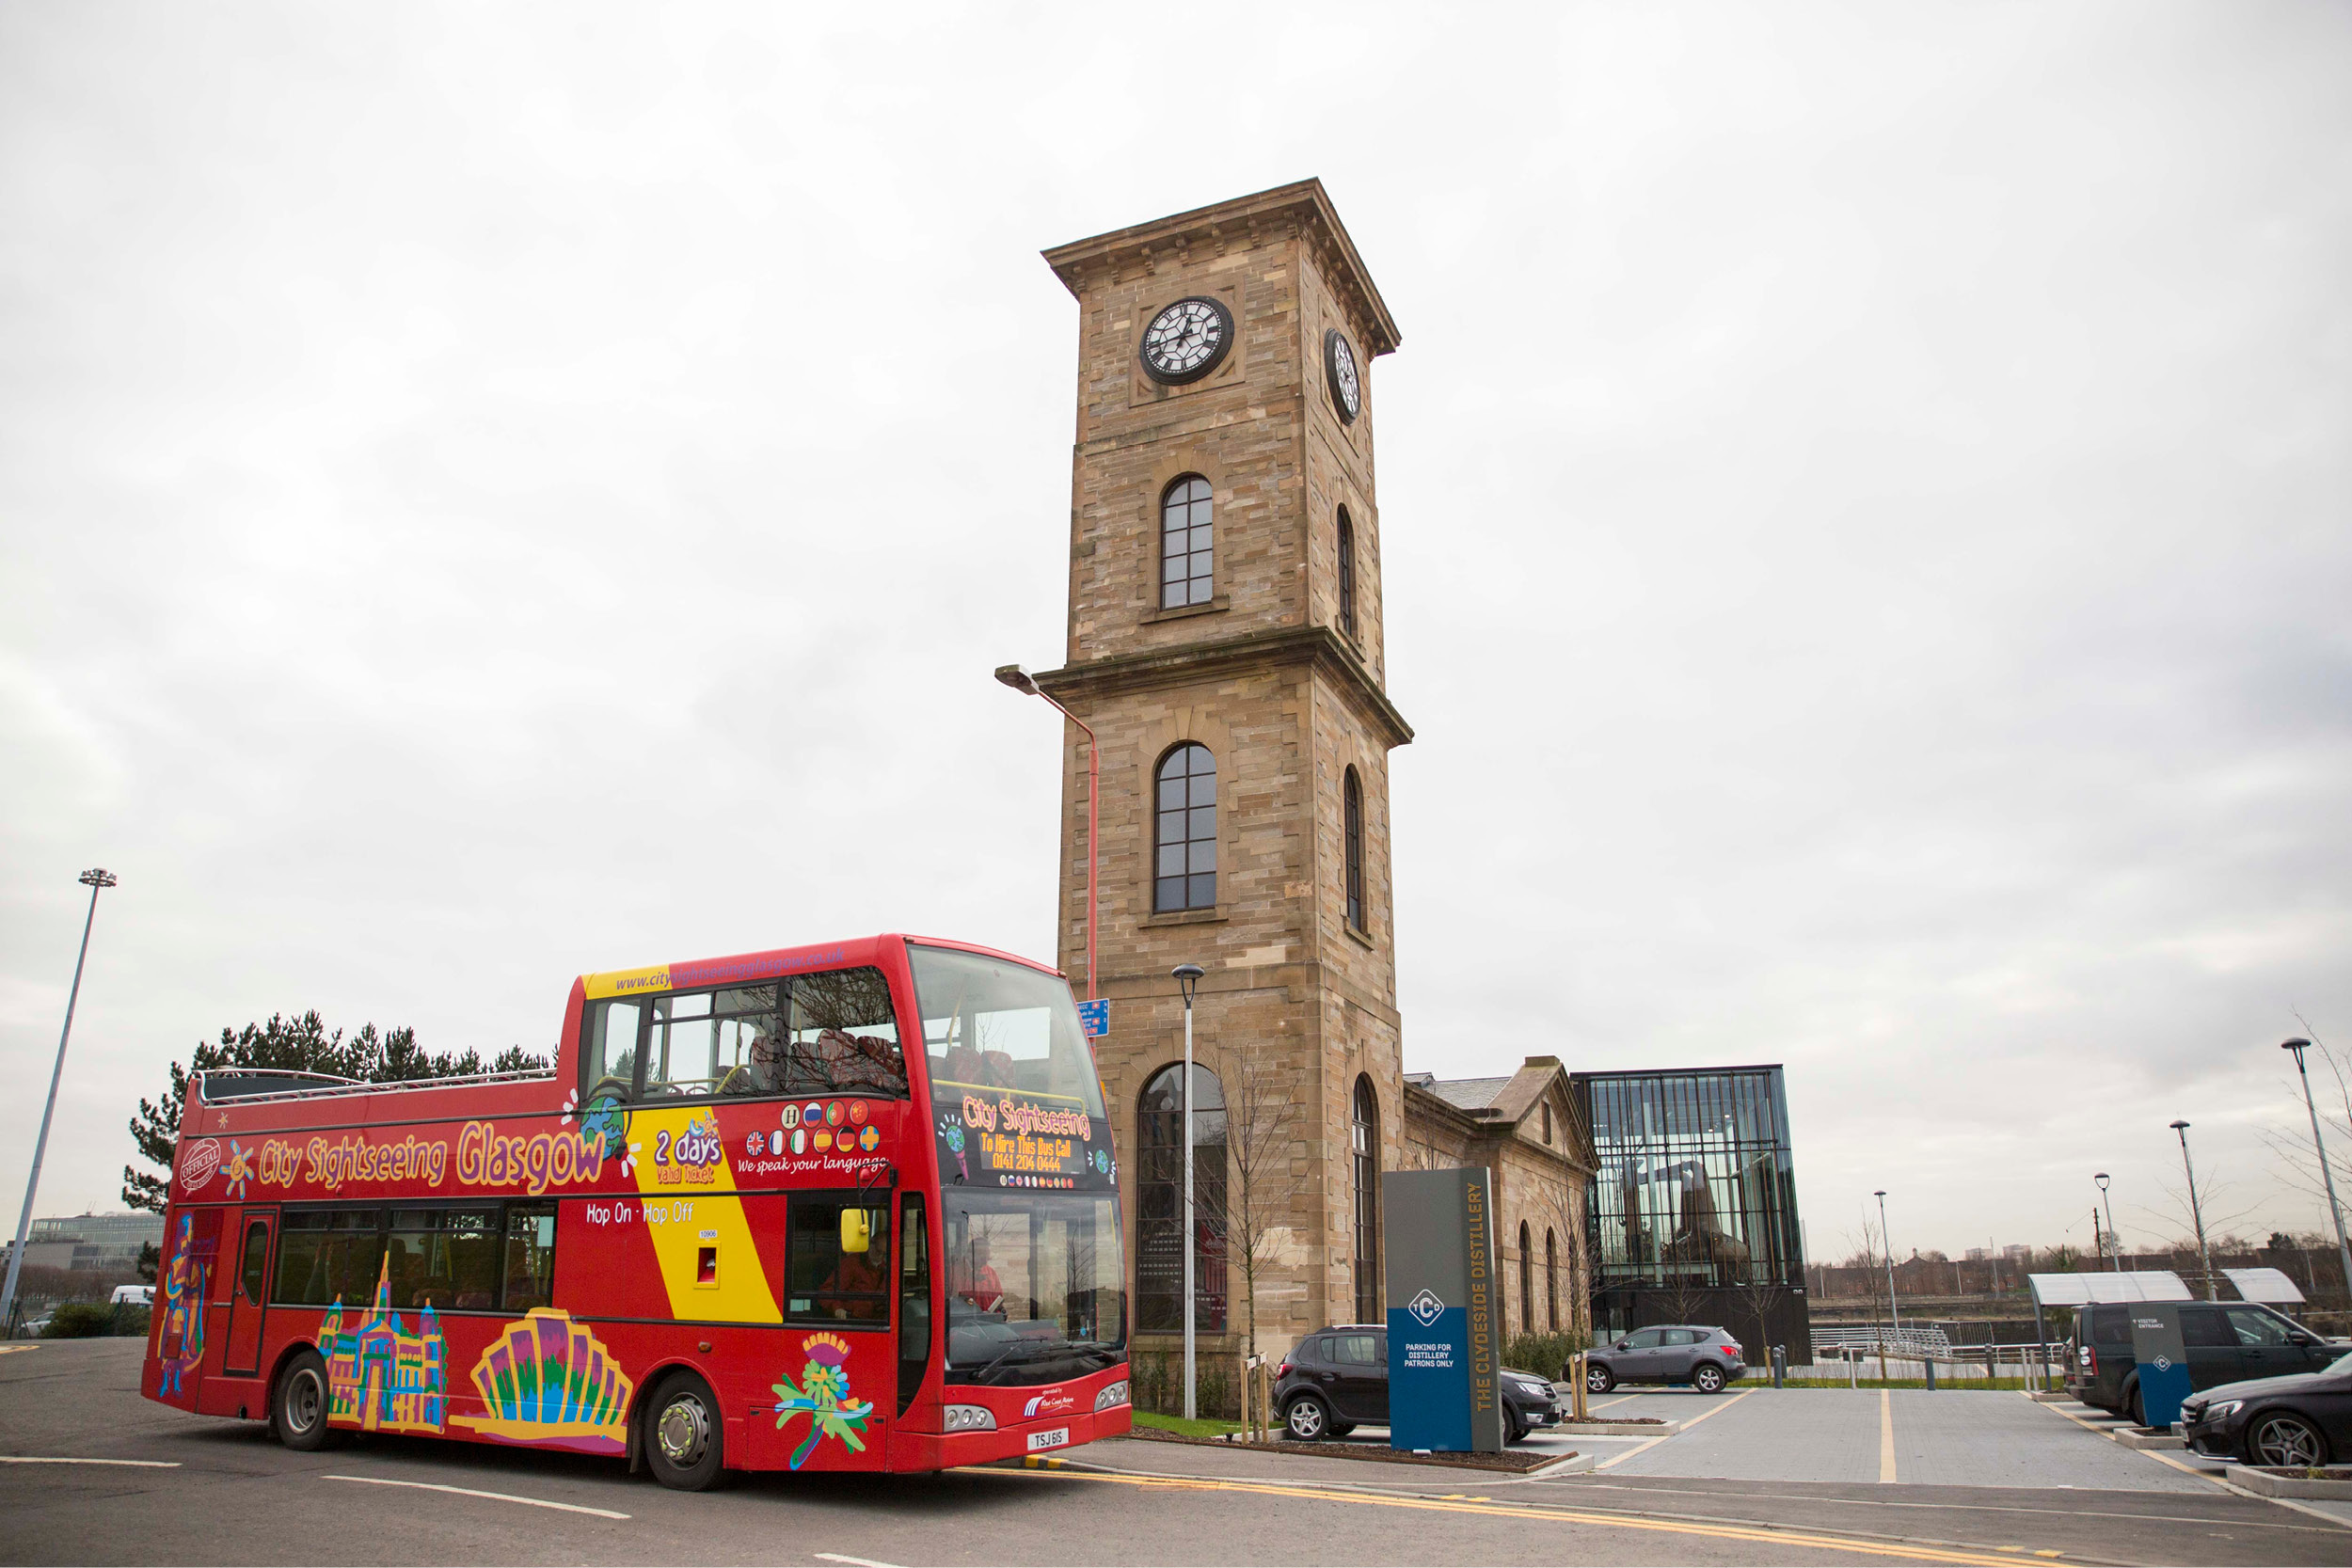 red double decker bus outside old tower building